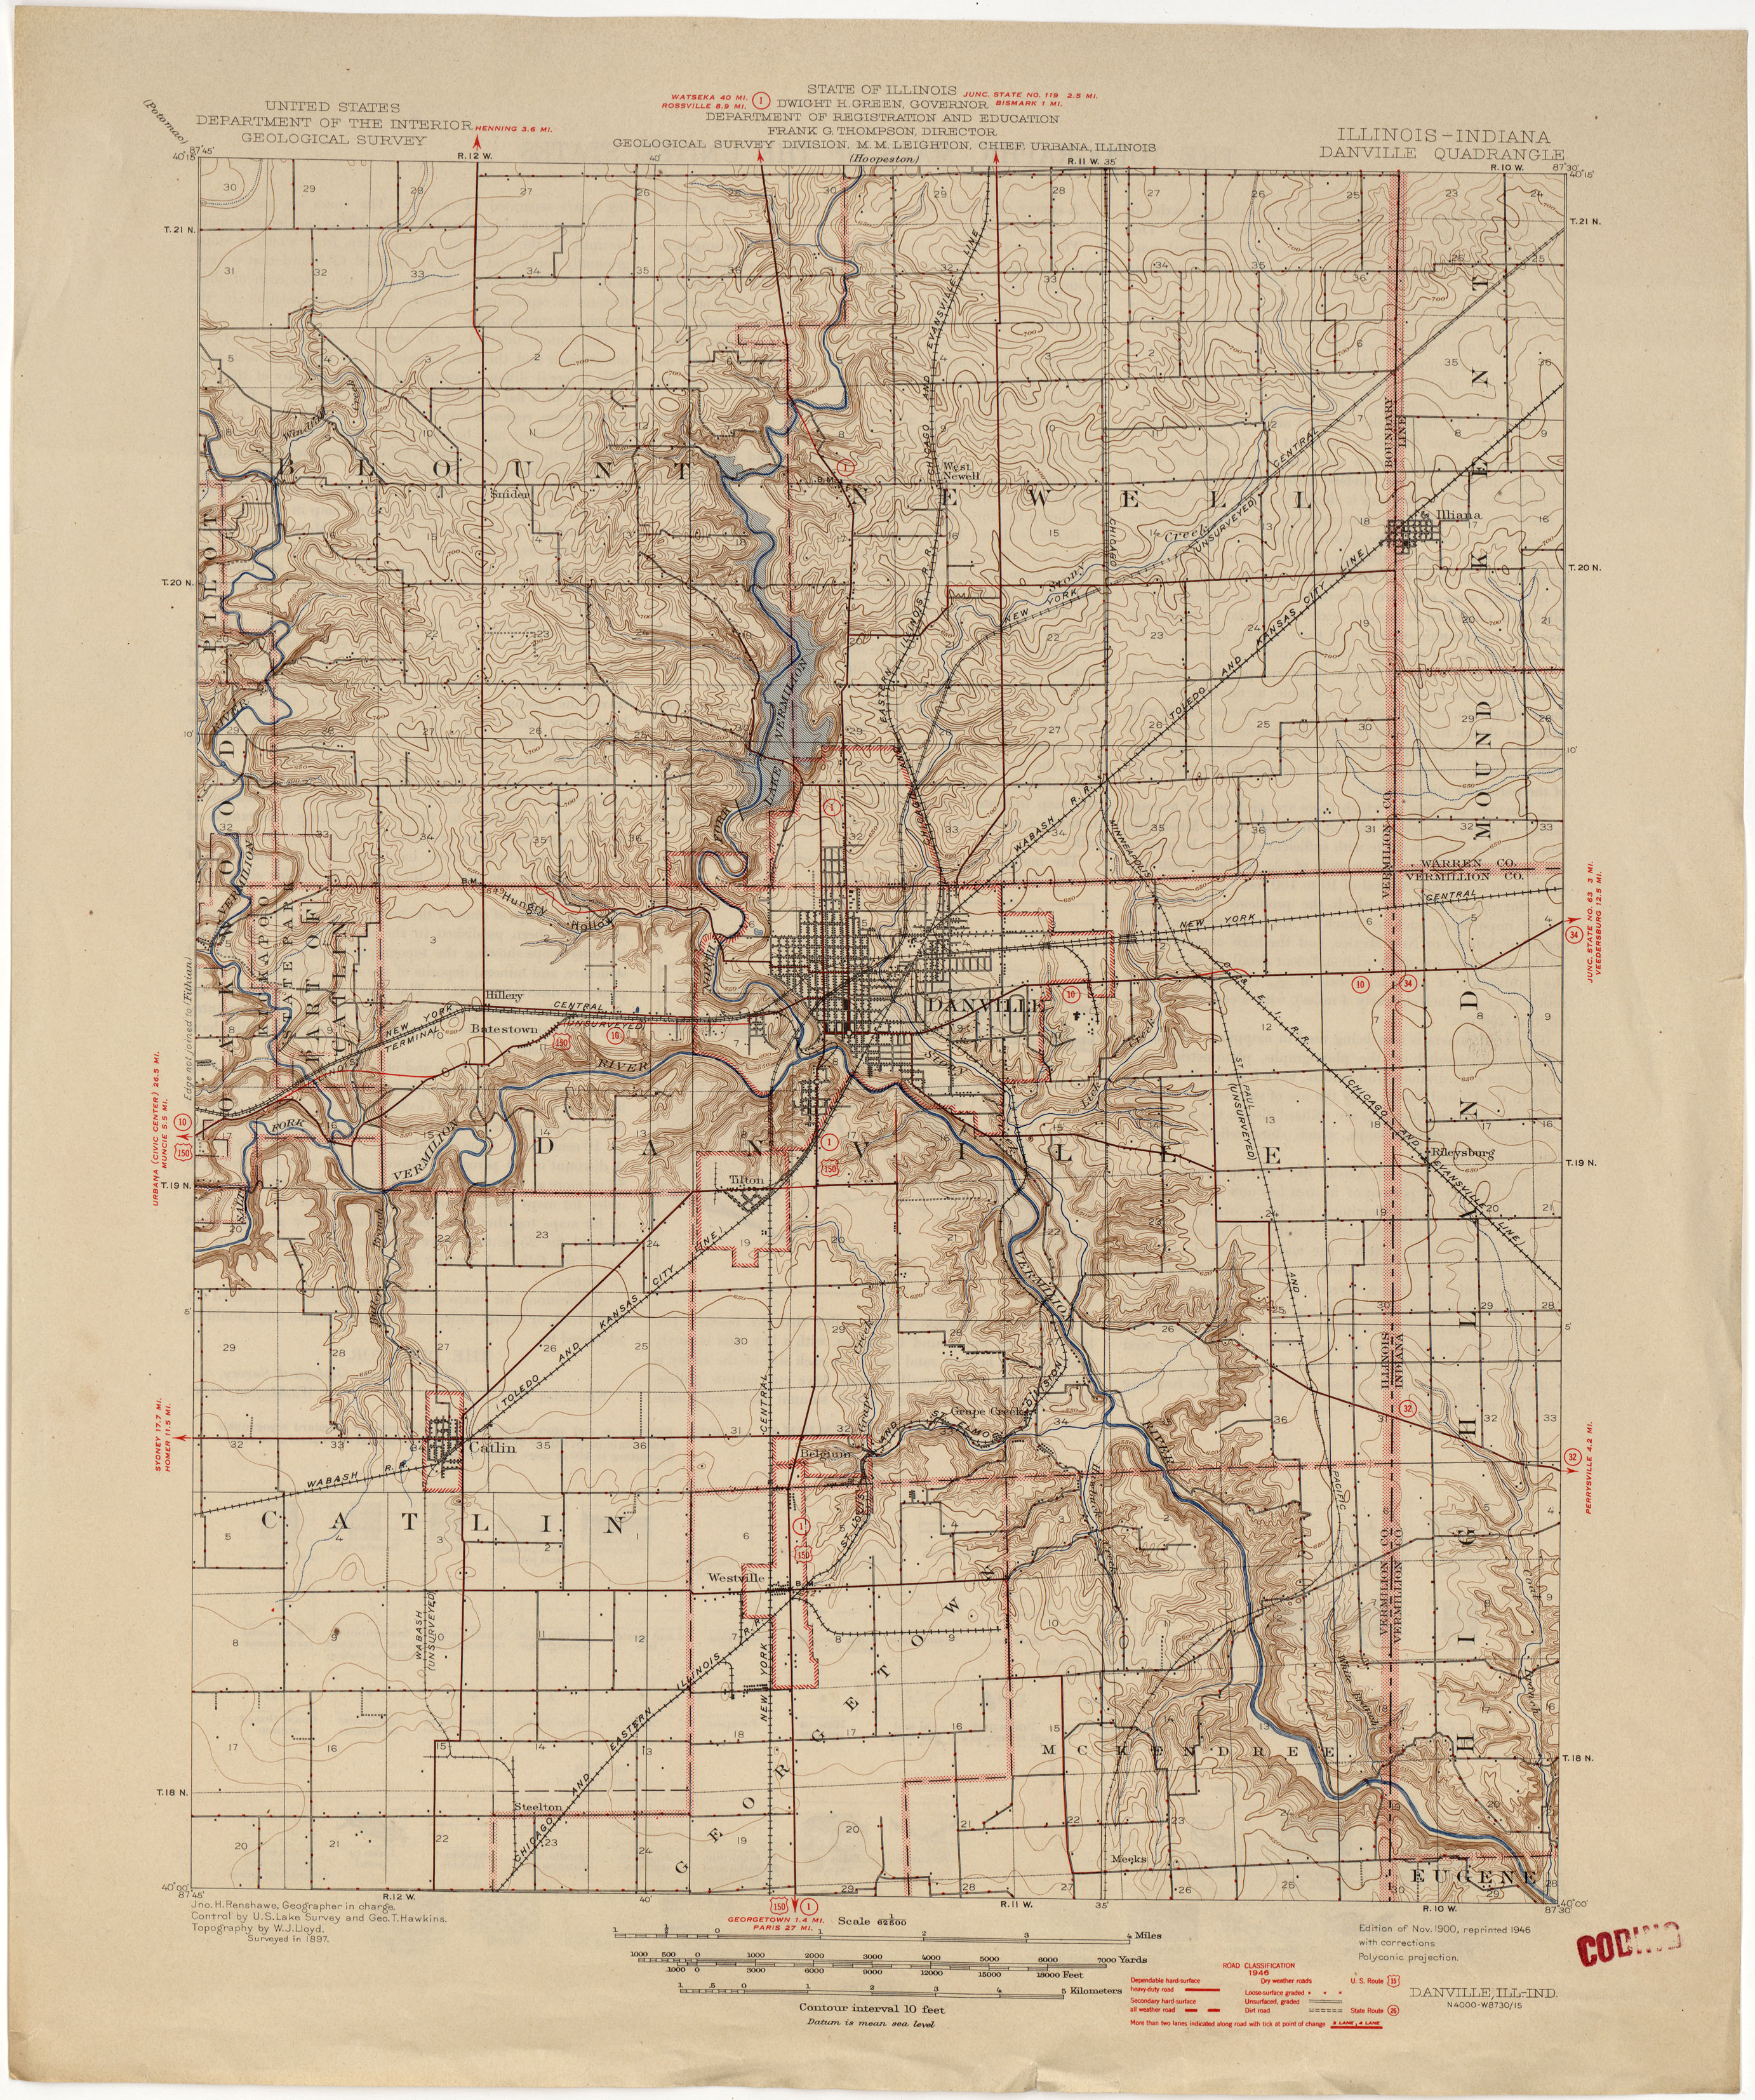 Sullivan Cave Indiana Map.Illinois Historical Topographic Maps Perry Castaneda Map